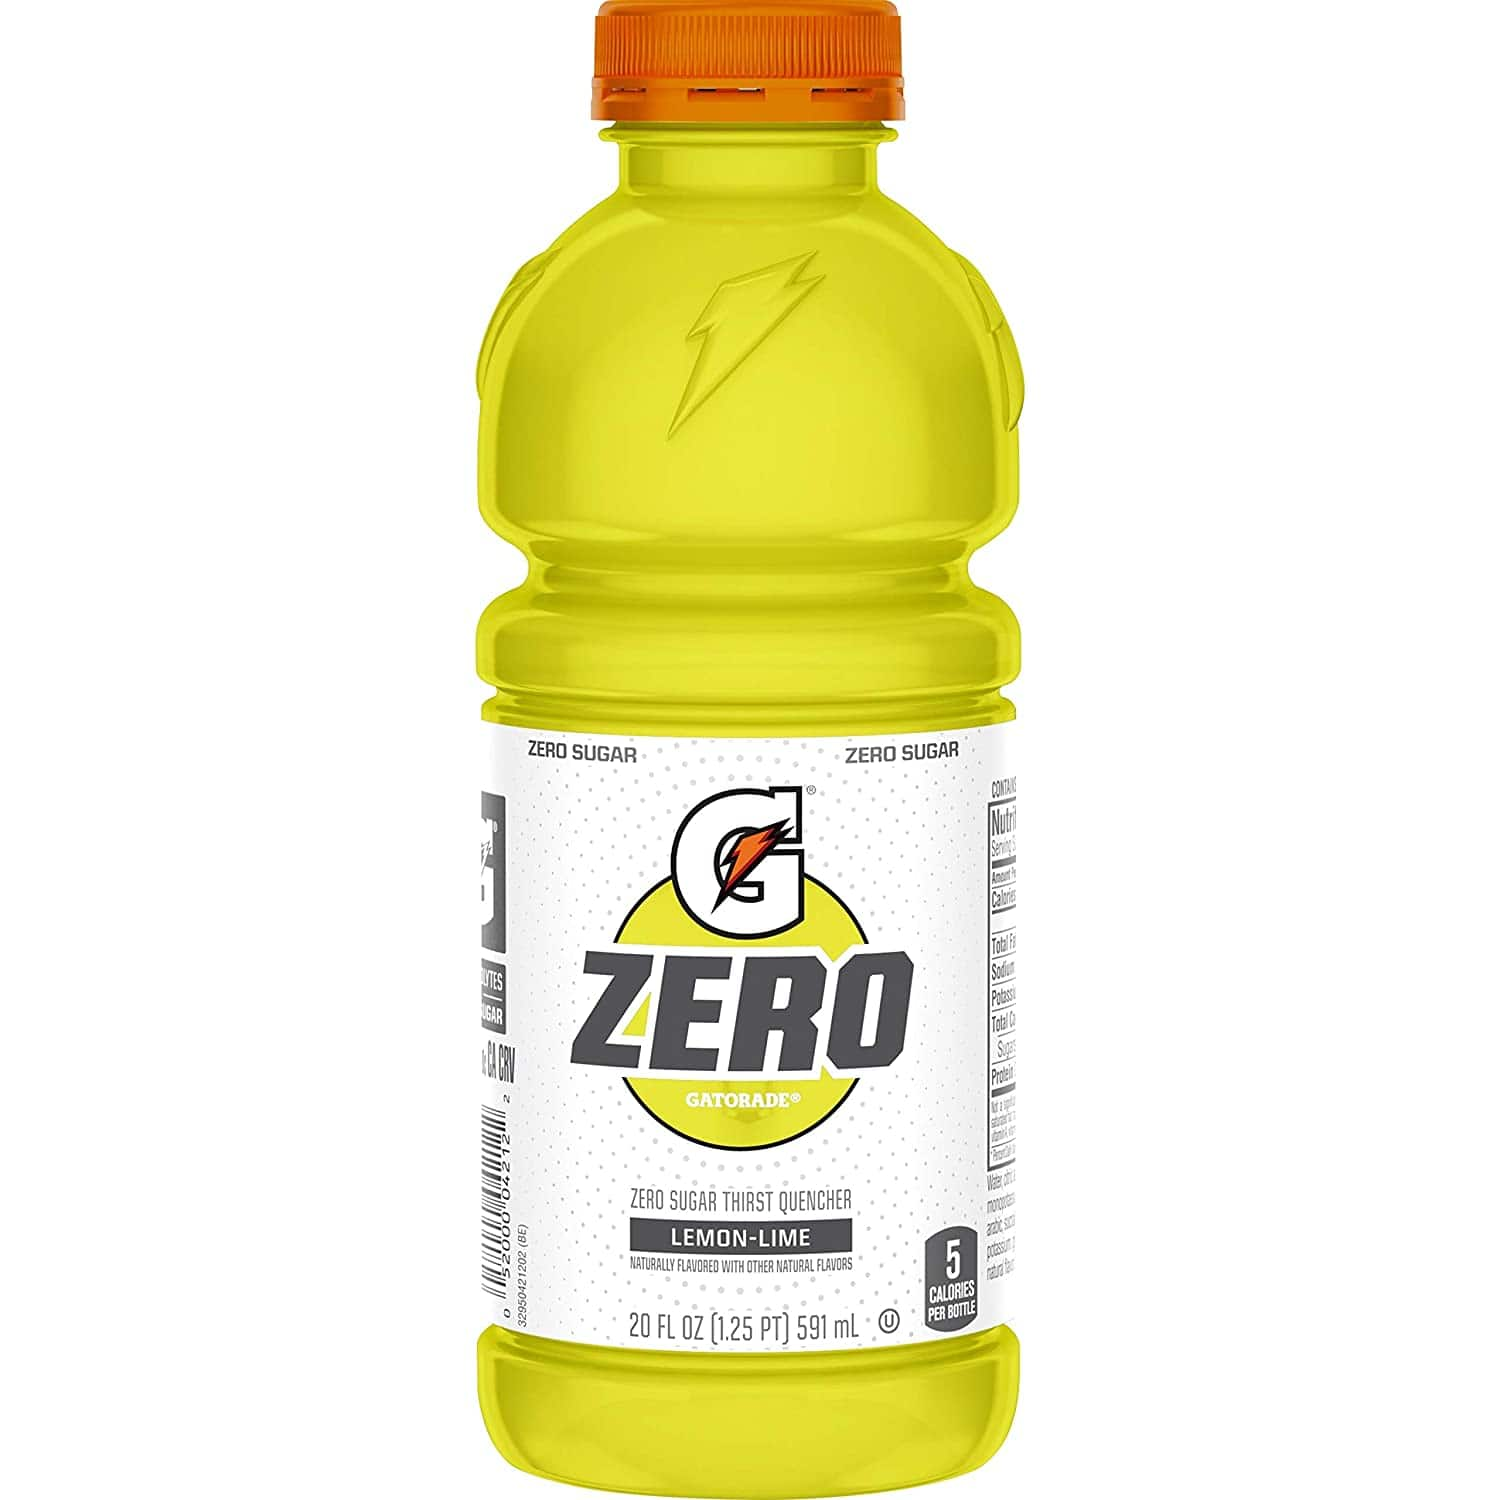 12-Pack 20-Oz Gatorade Zero Sugar Thirst Quencher (Lemon-Lime)